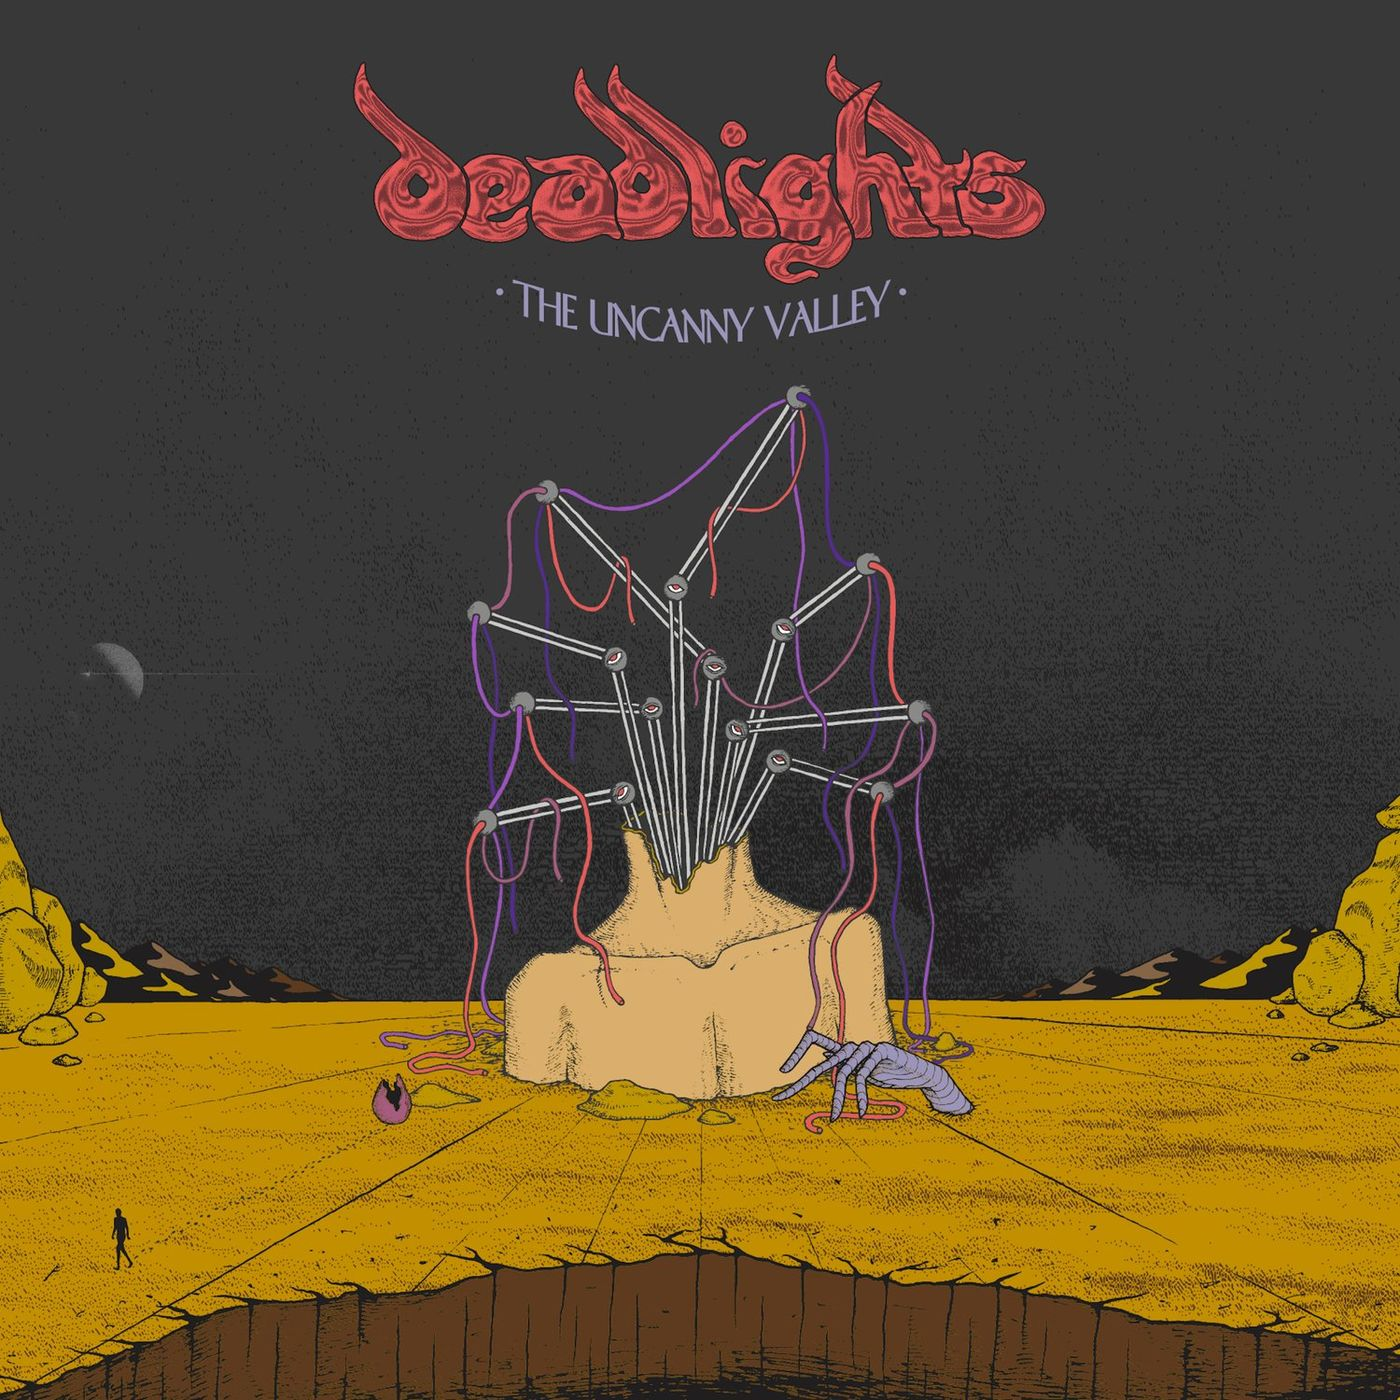 Deadlights - The King of Nowhere [single] (2021)